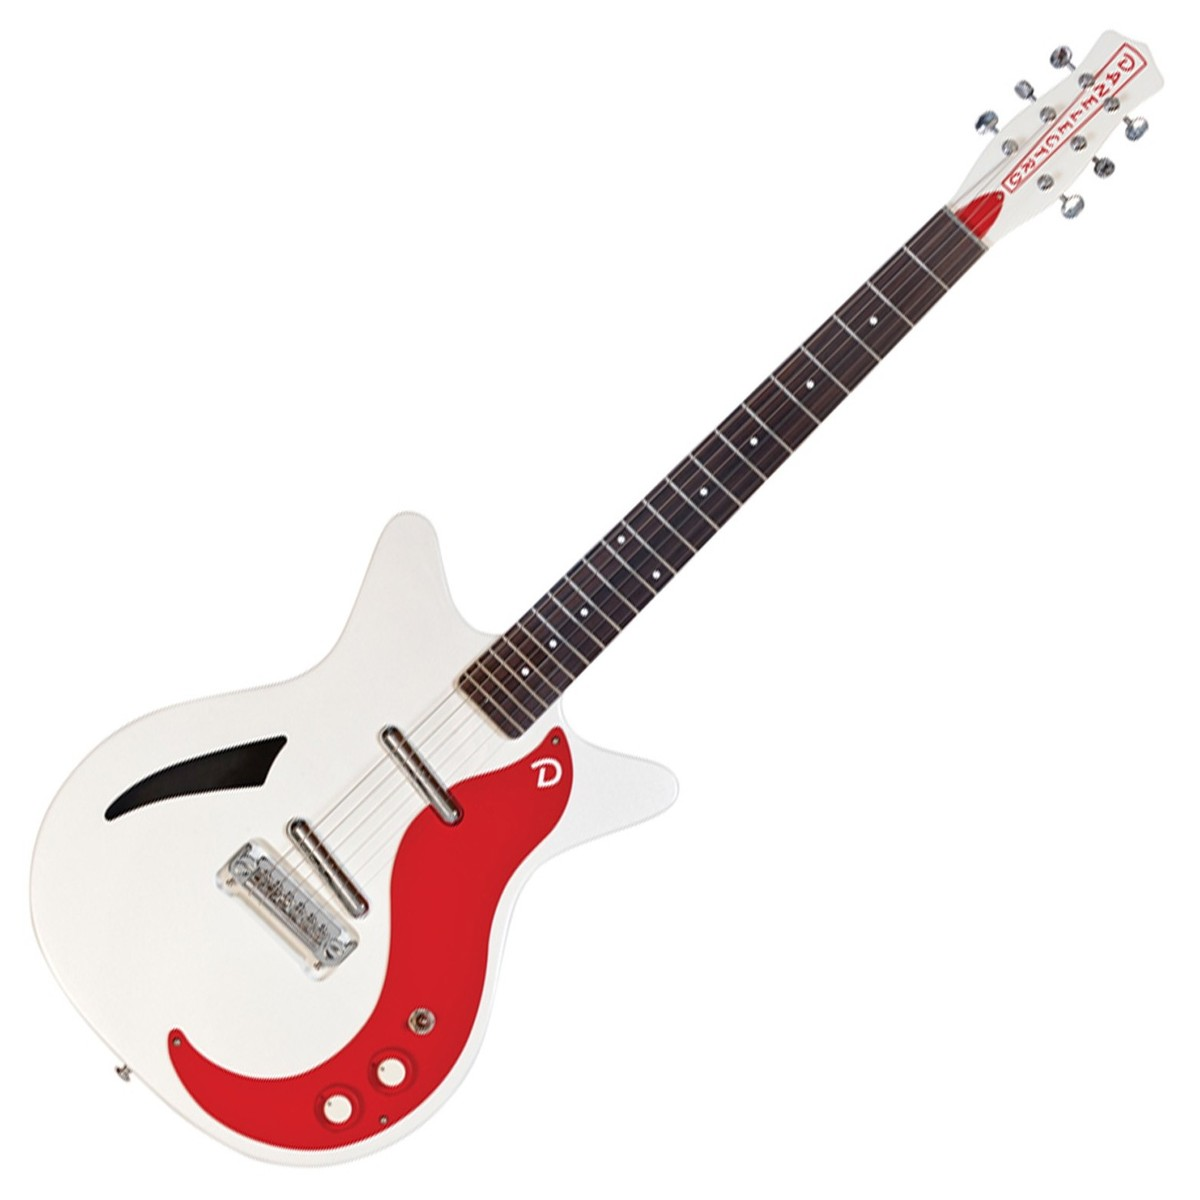 Danelectro DC59M Spruce Electric Guitar, White Pearl/Red